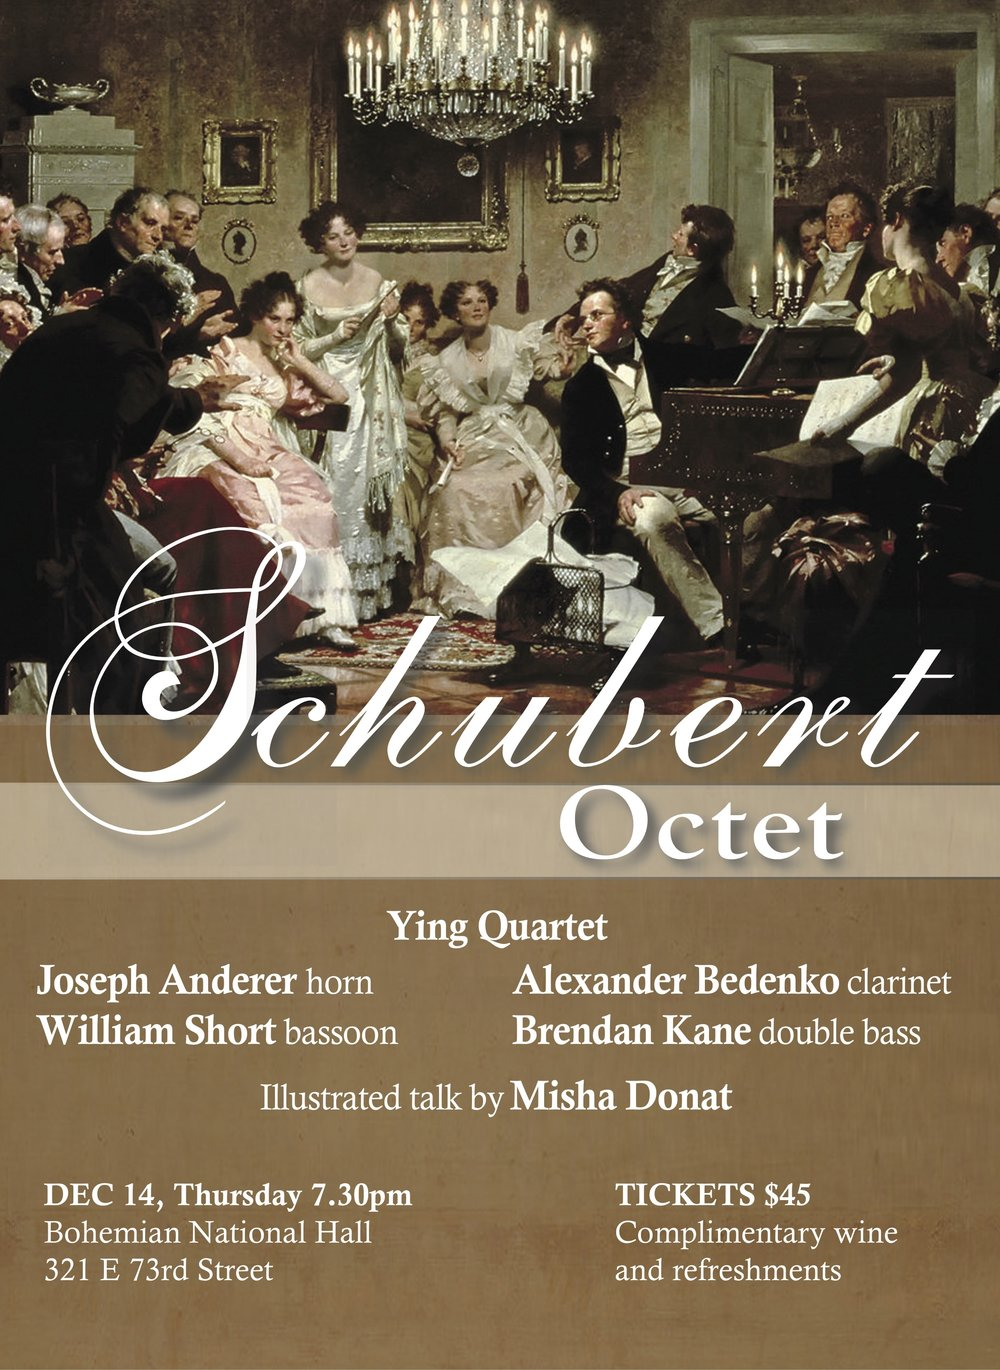 Aspect-Schubert Octet 16x24 poster DM.jpg